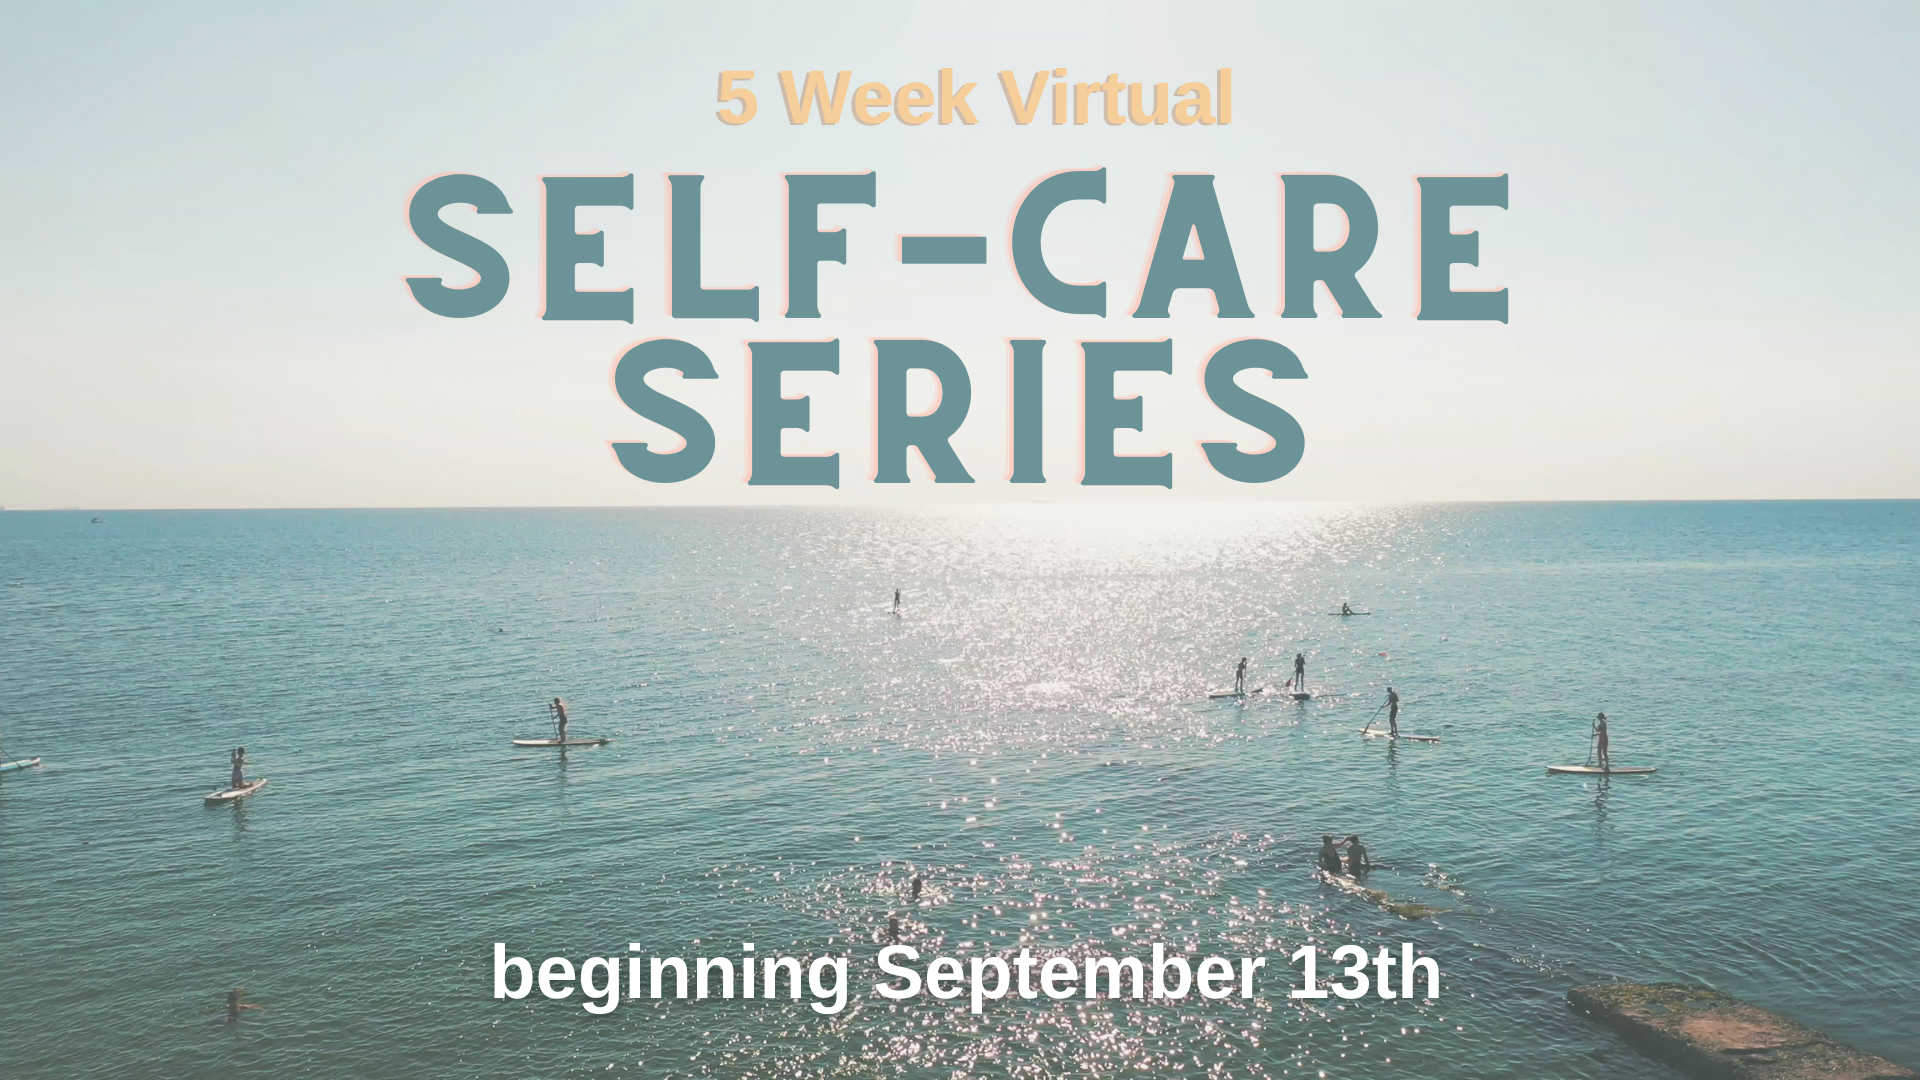 people paddle boarding in background of ad for Self Care Series